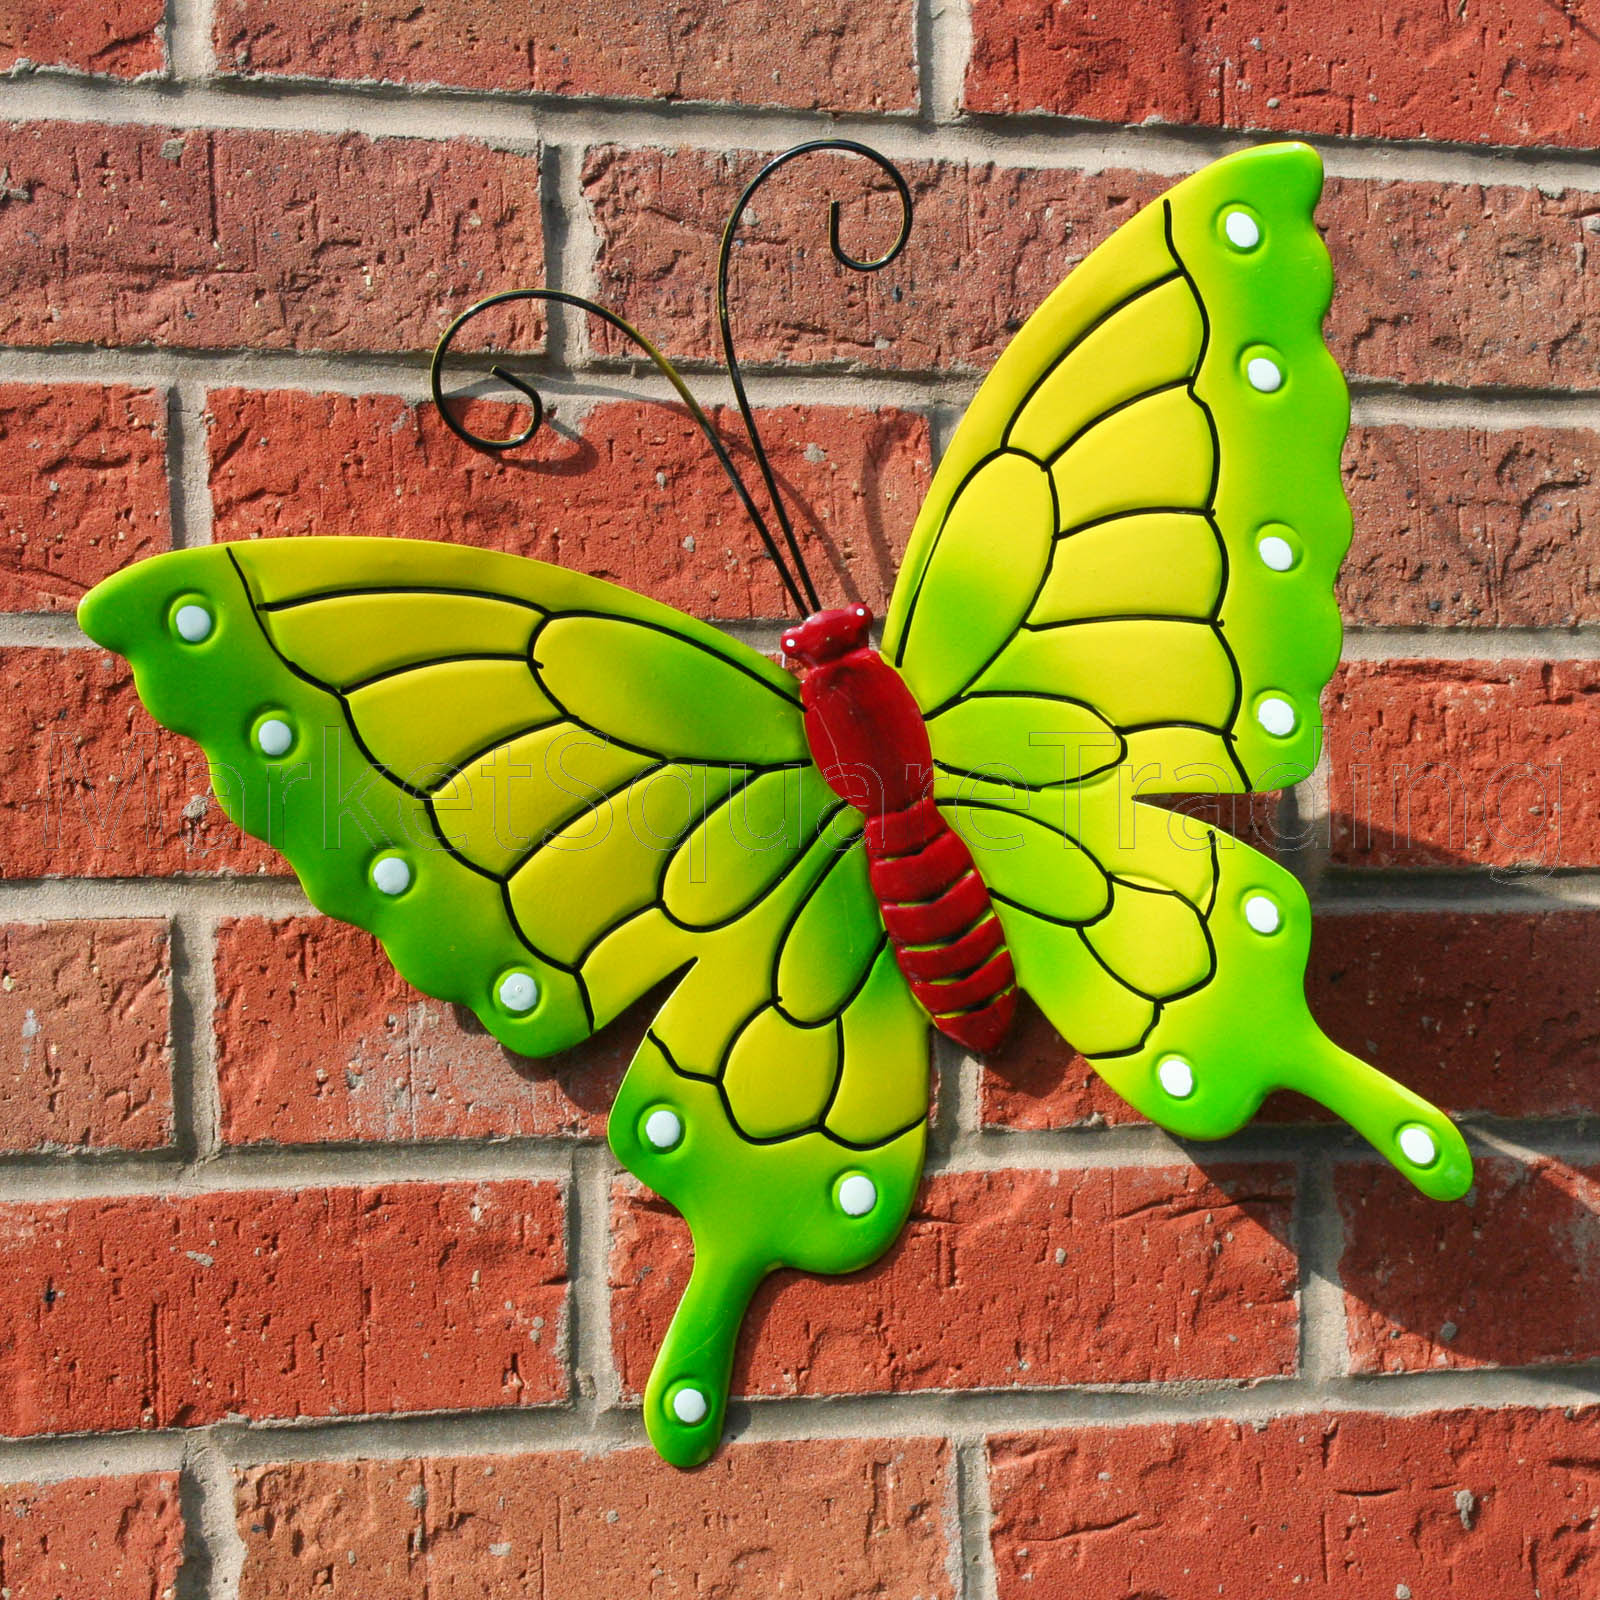 Butterfly Outdoor Ext Lrg New Green Metal Butterflies Garden Wall